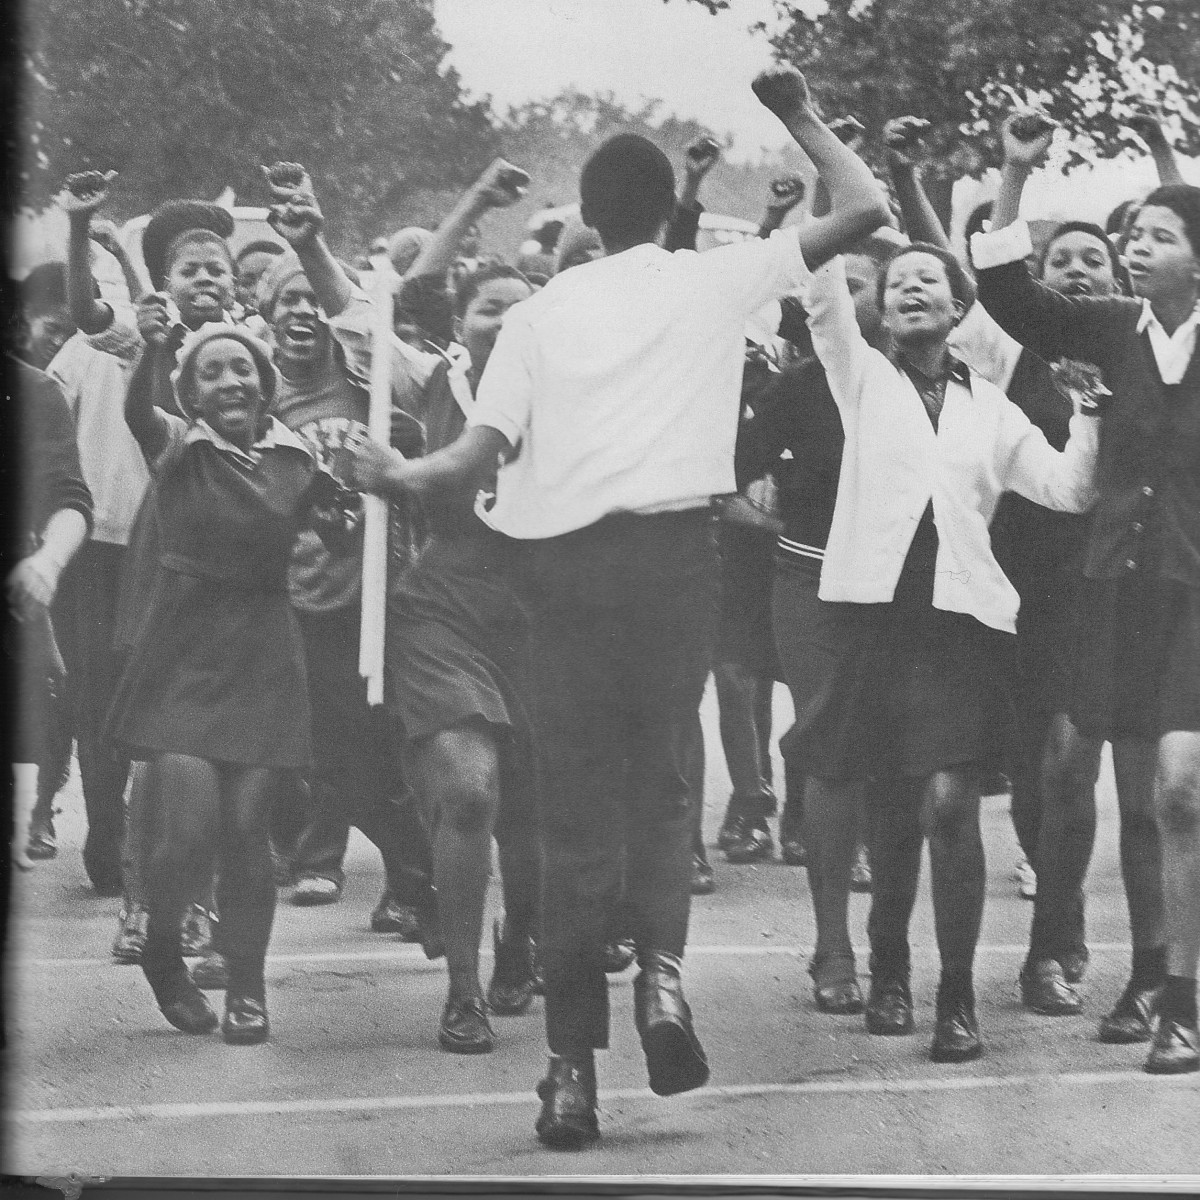 June !6th 1976, Students exuberantly Marching against being Instructed in Afrikaans Language in all their high schools courses; They were also protesting Bantu Education.